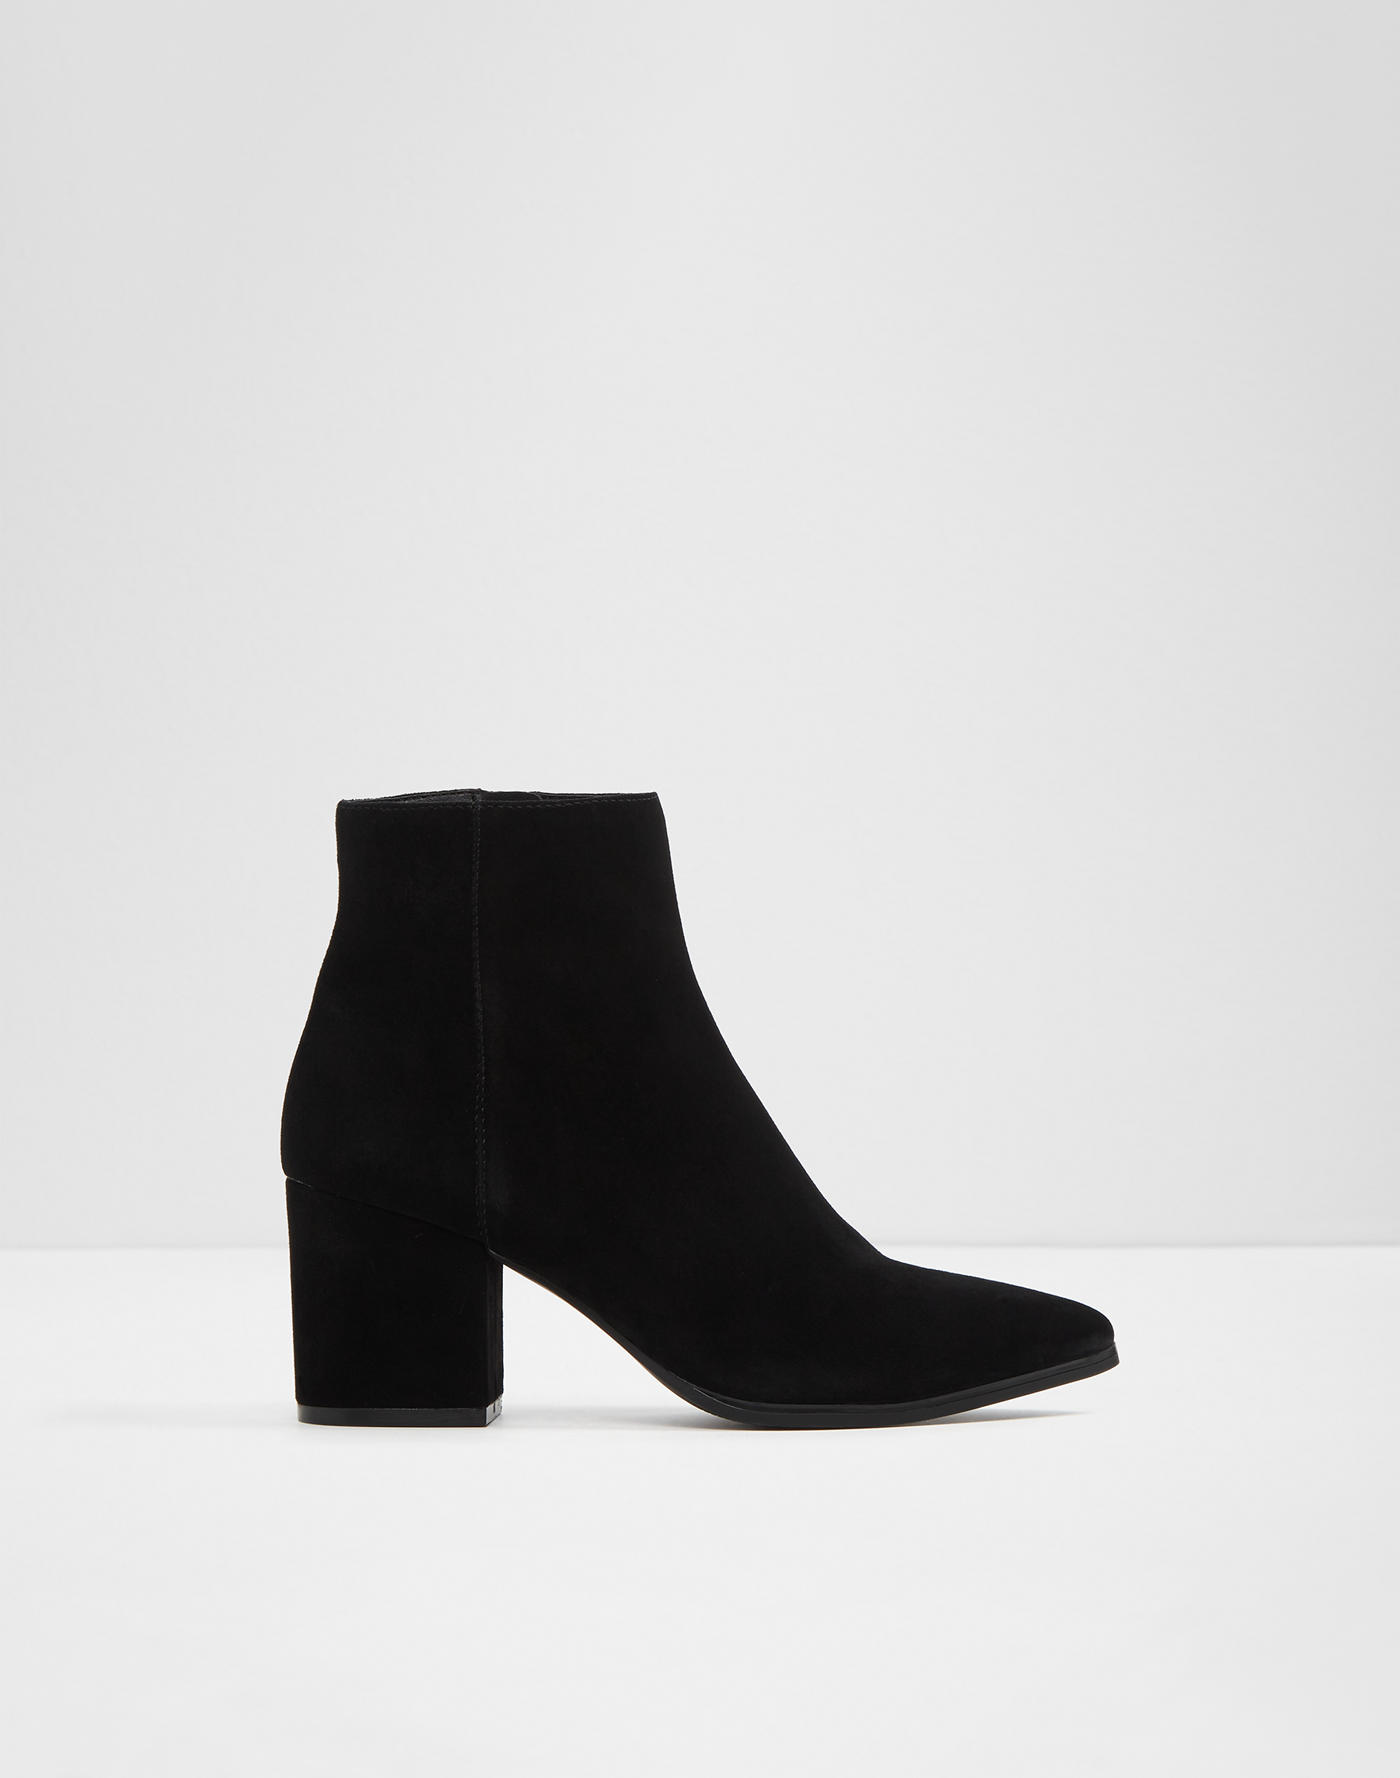 48b47853e20549 Boots For Women | Winter Boots & Ankle Boots | ALDO US | Aldoshoes.com US